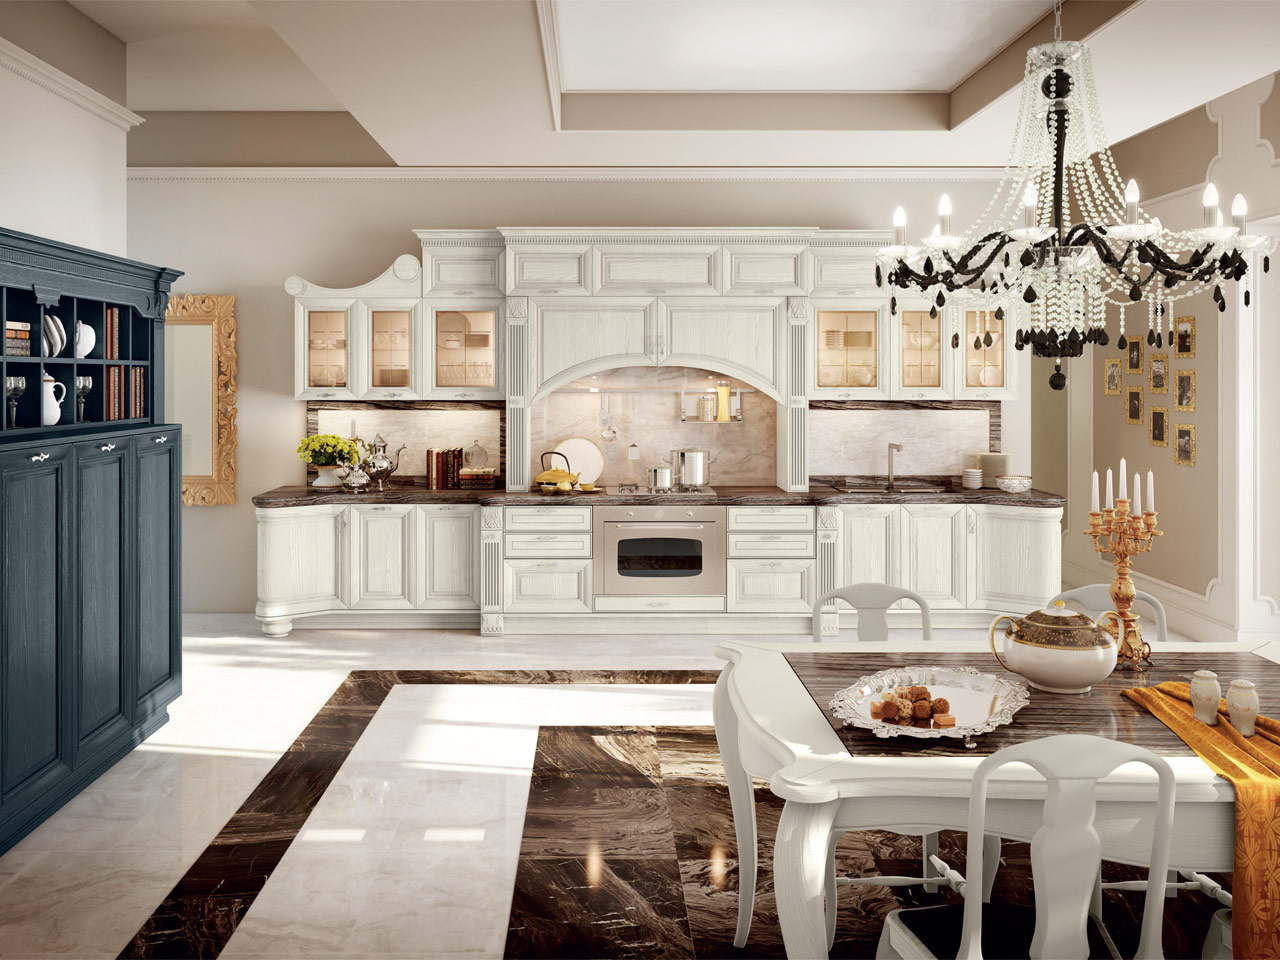 PANTHEON | Lacquered kitchen By Cucine Lube